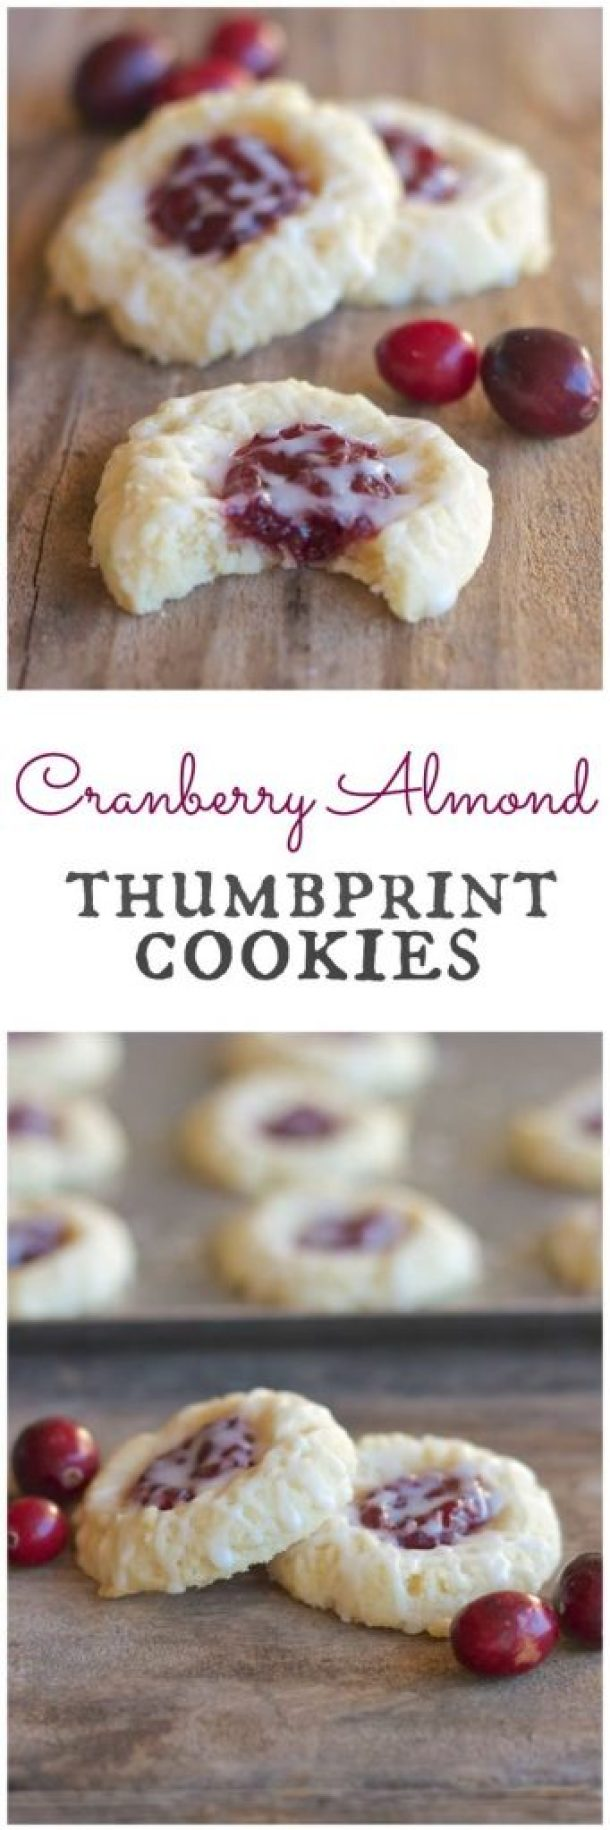 Cranberry Thumbprint Cookies With Almond Glaze Recipe | Lovely Little Kitchen